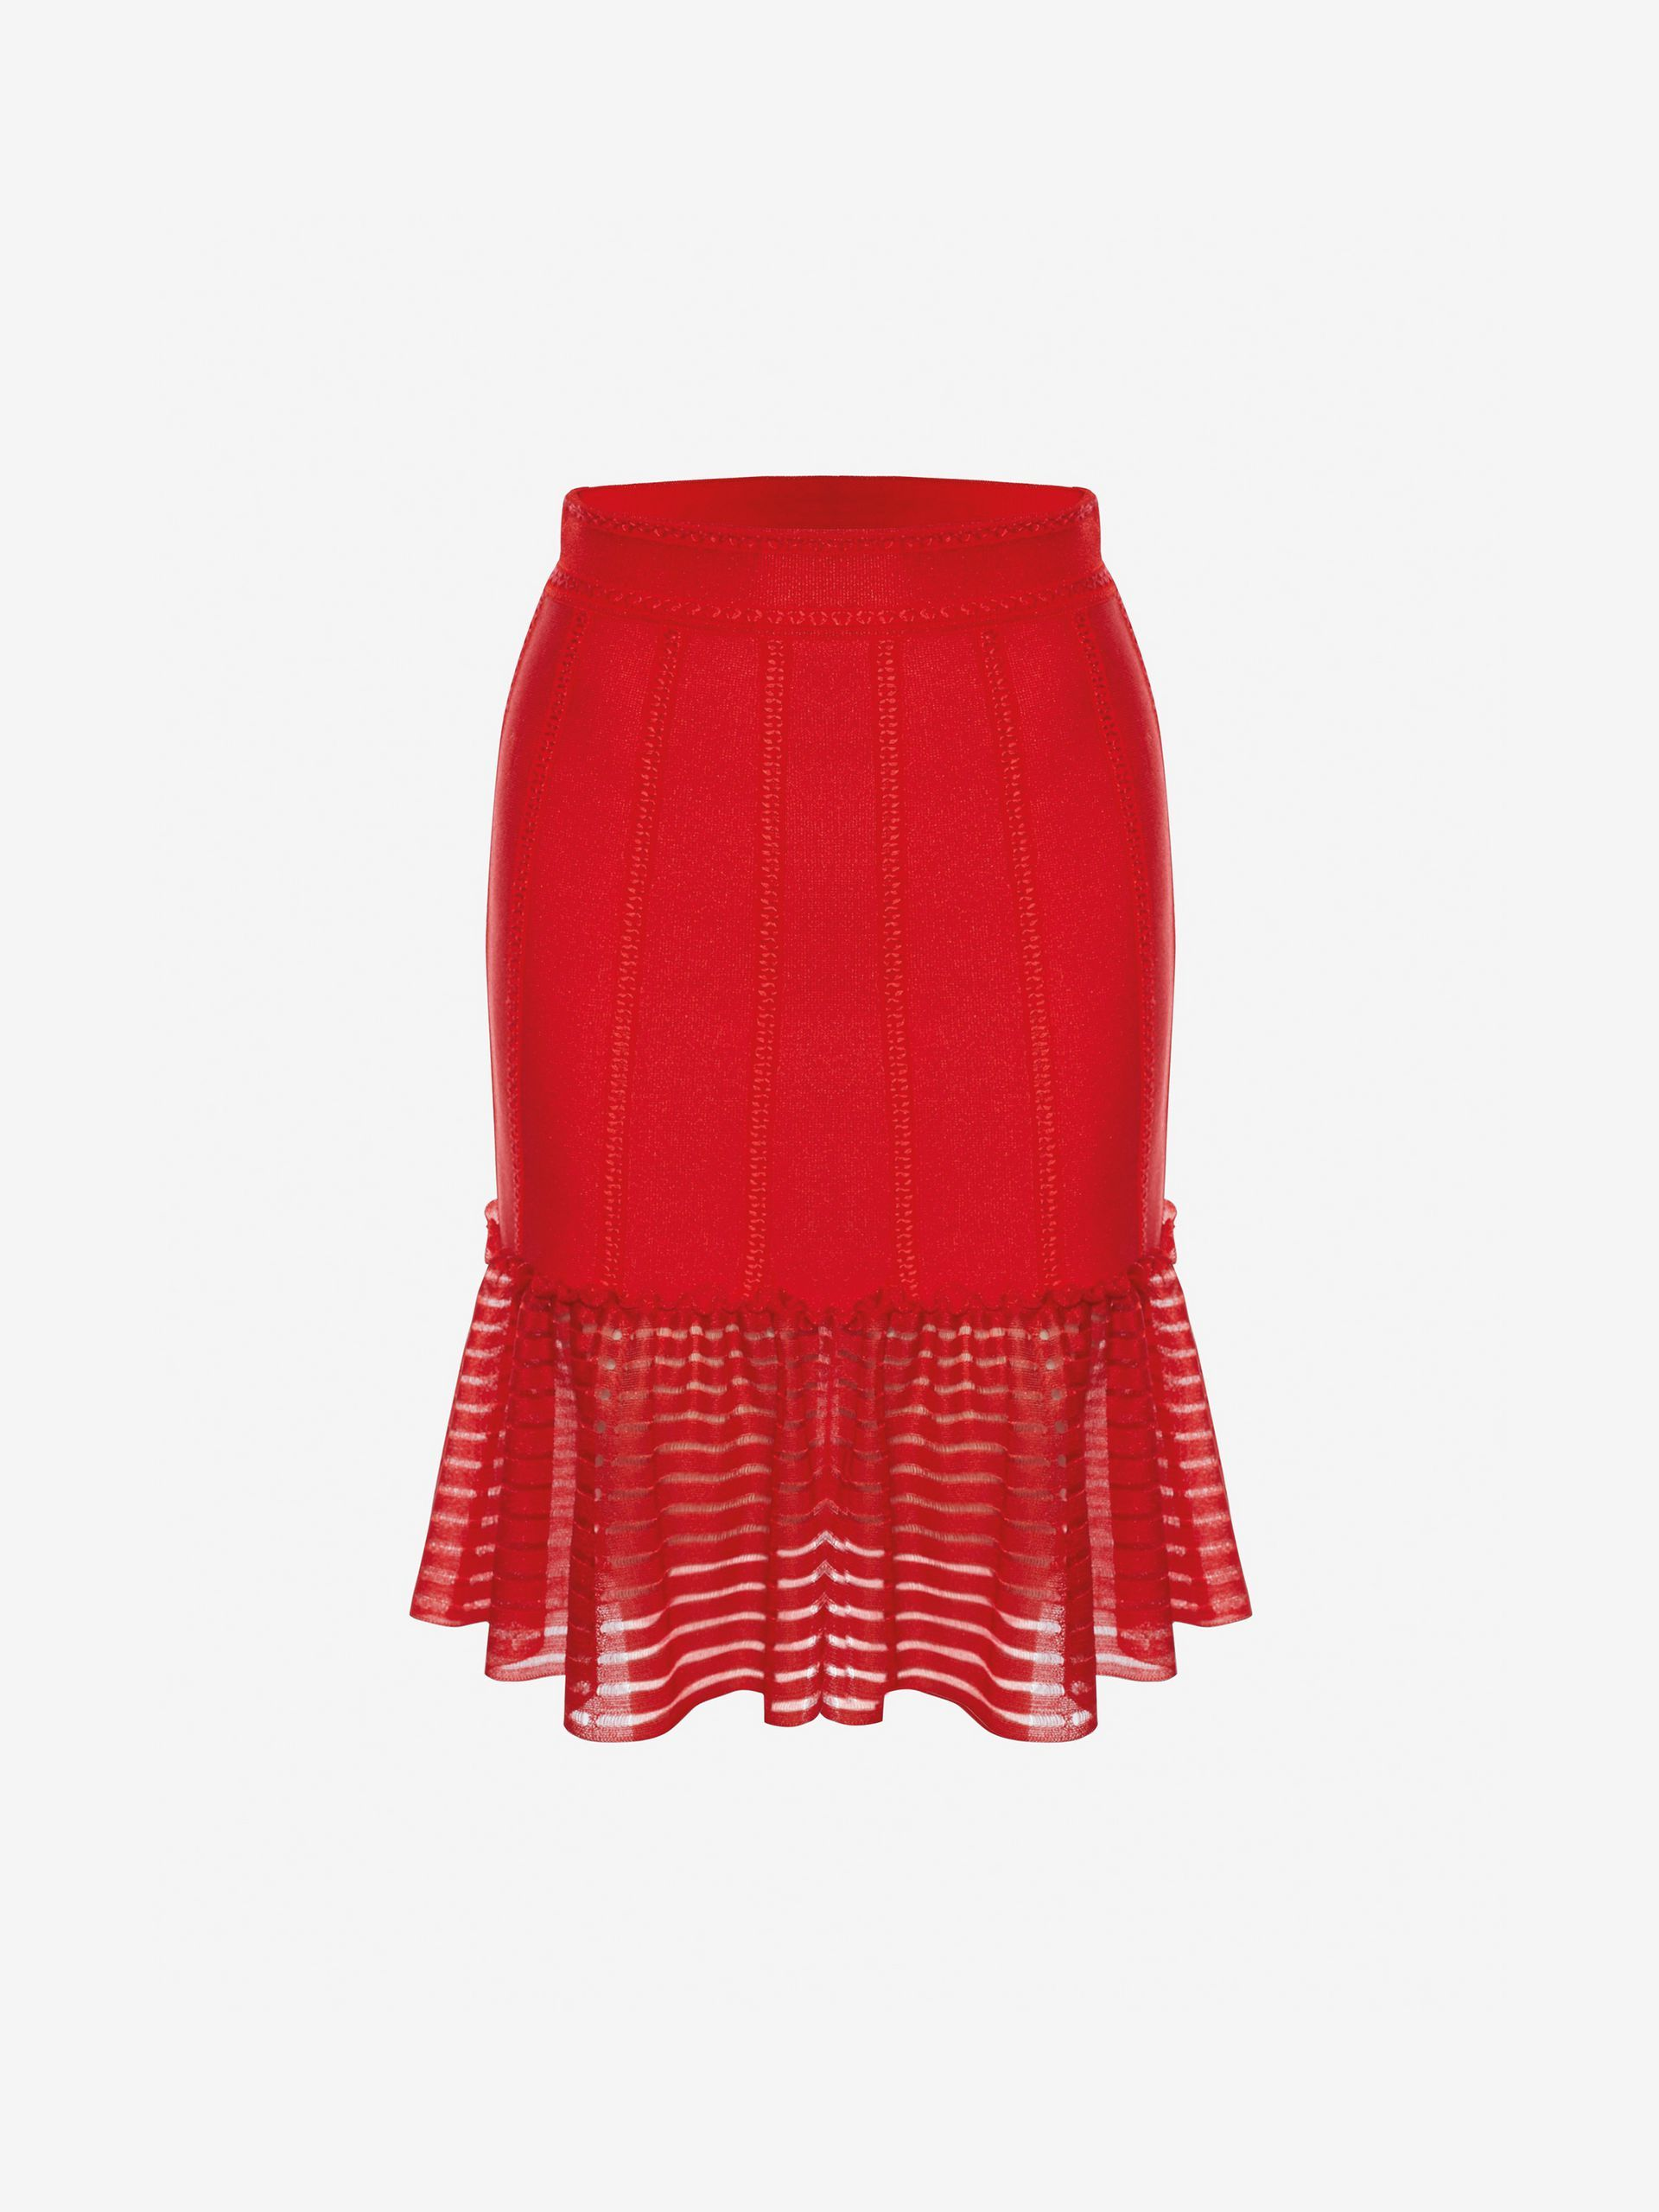 6de5886c78  Shop Women 's Lust Red Sheer Knit Mini Skirt from the official online store  of iconic fashion designer Alexander McQueen.